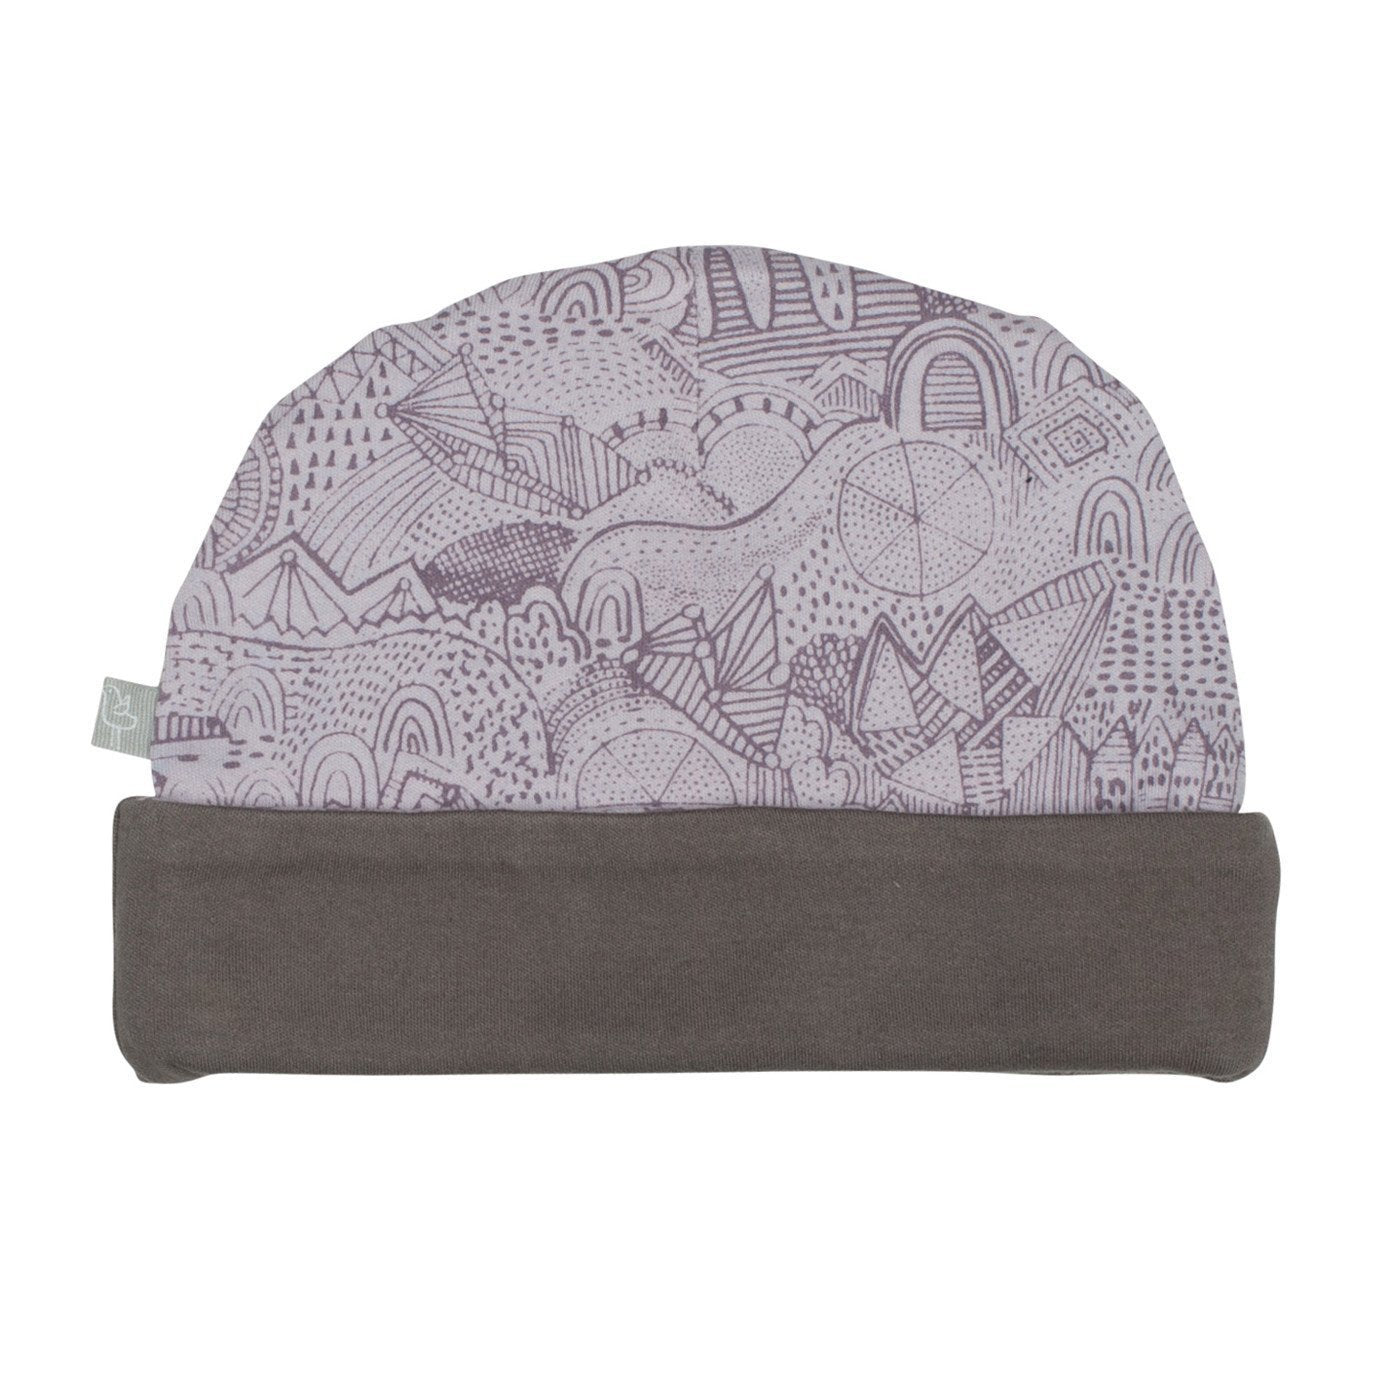 Finn and Emma organic cotton beanie for babies in charcoal and fairytale print